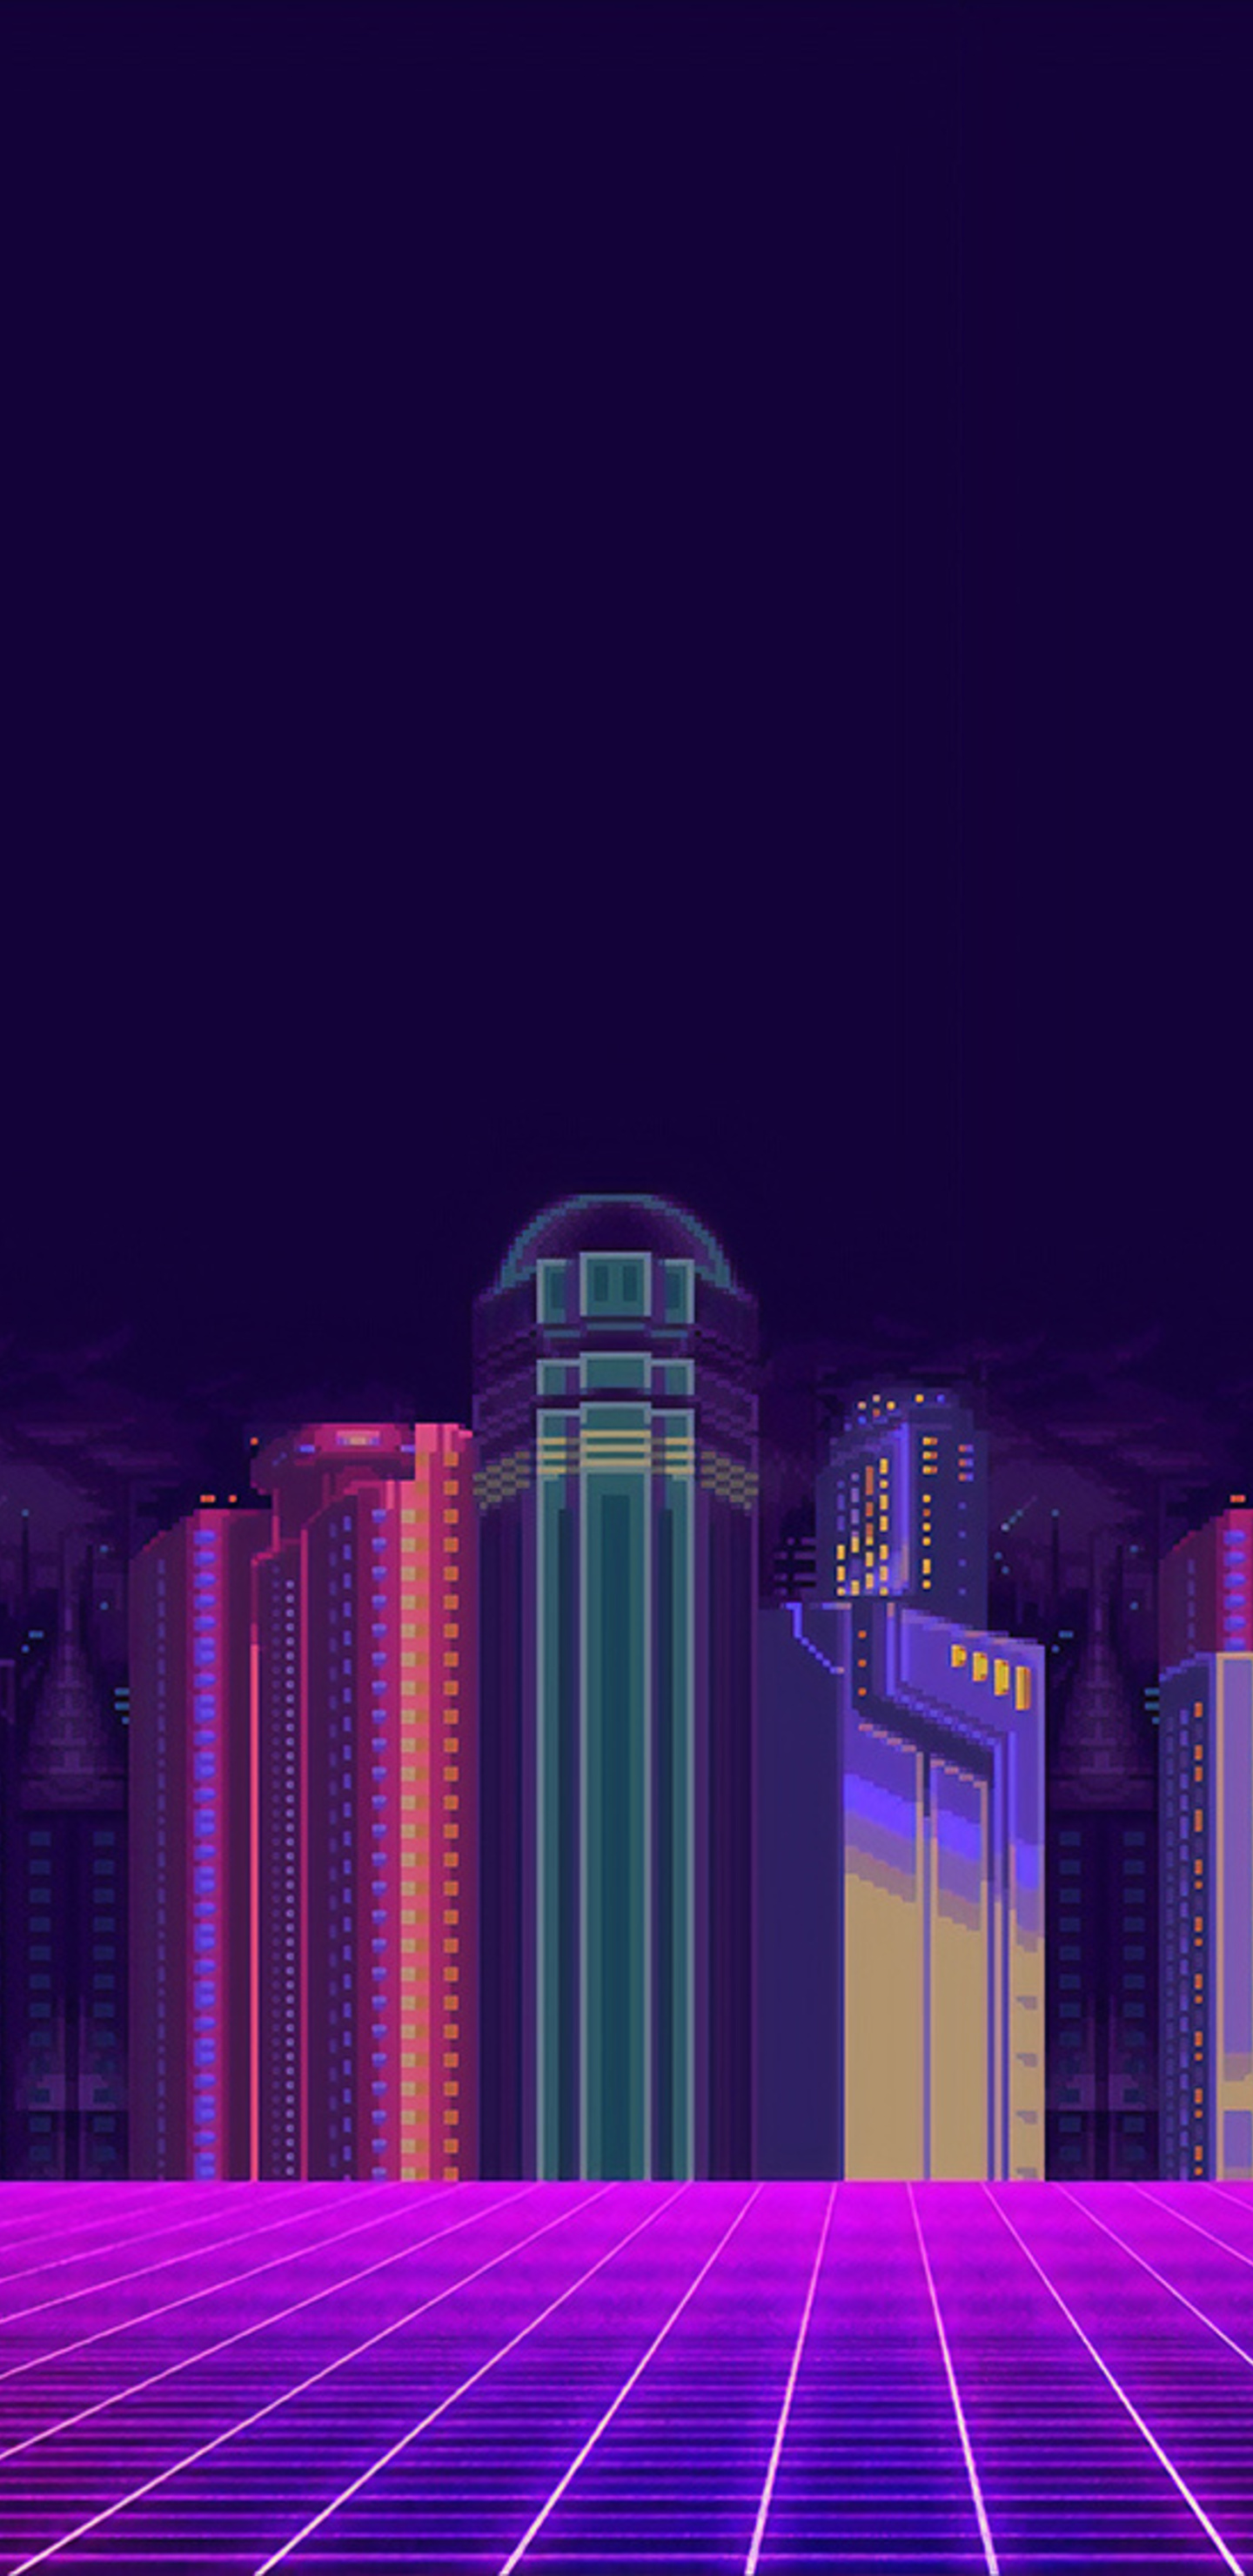 1440x2960 Synthwave Buildings 8 Bit Samsung Galaxy Note 9 8 S9 S8